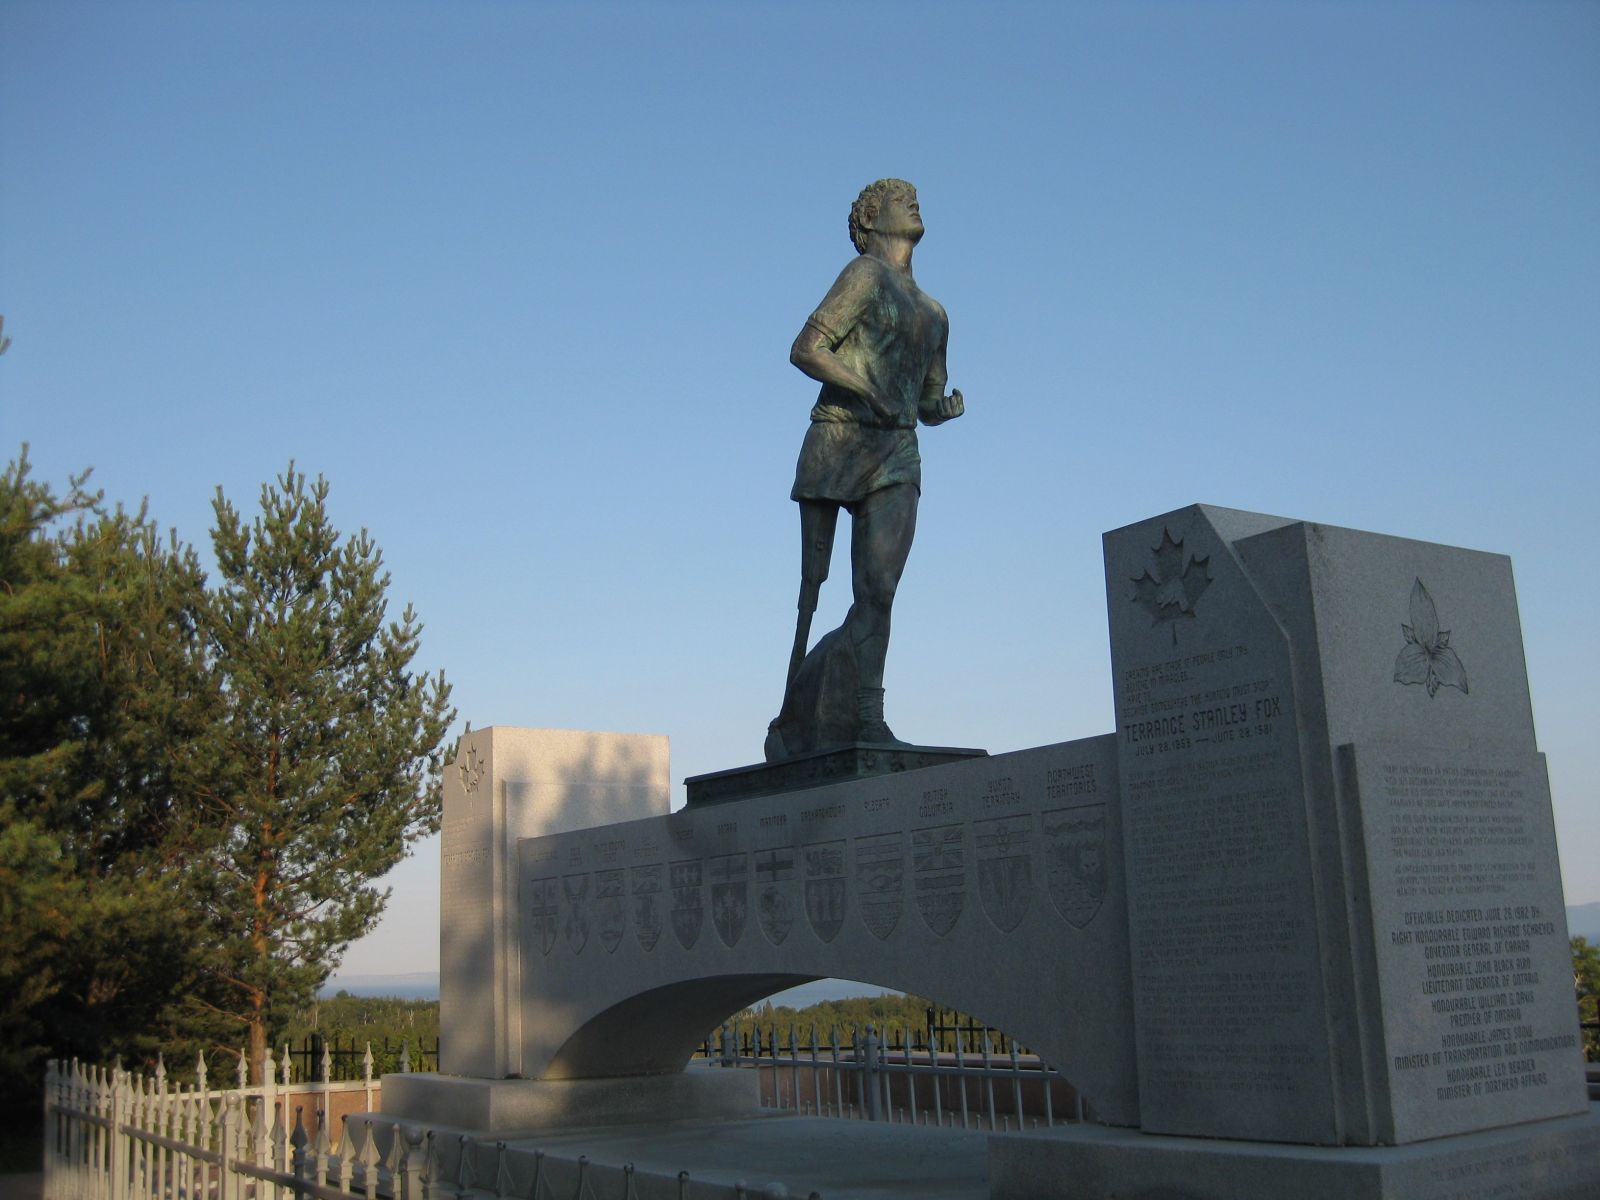 A photograph of the Terry Fox Memorial in Thunder Bay Ontario